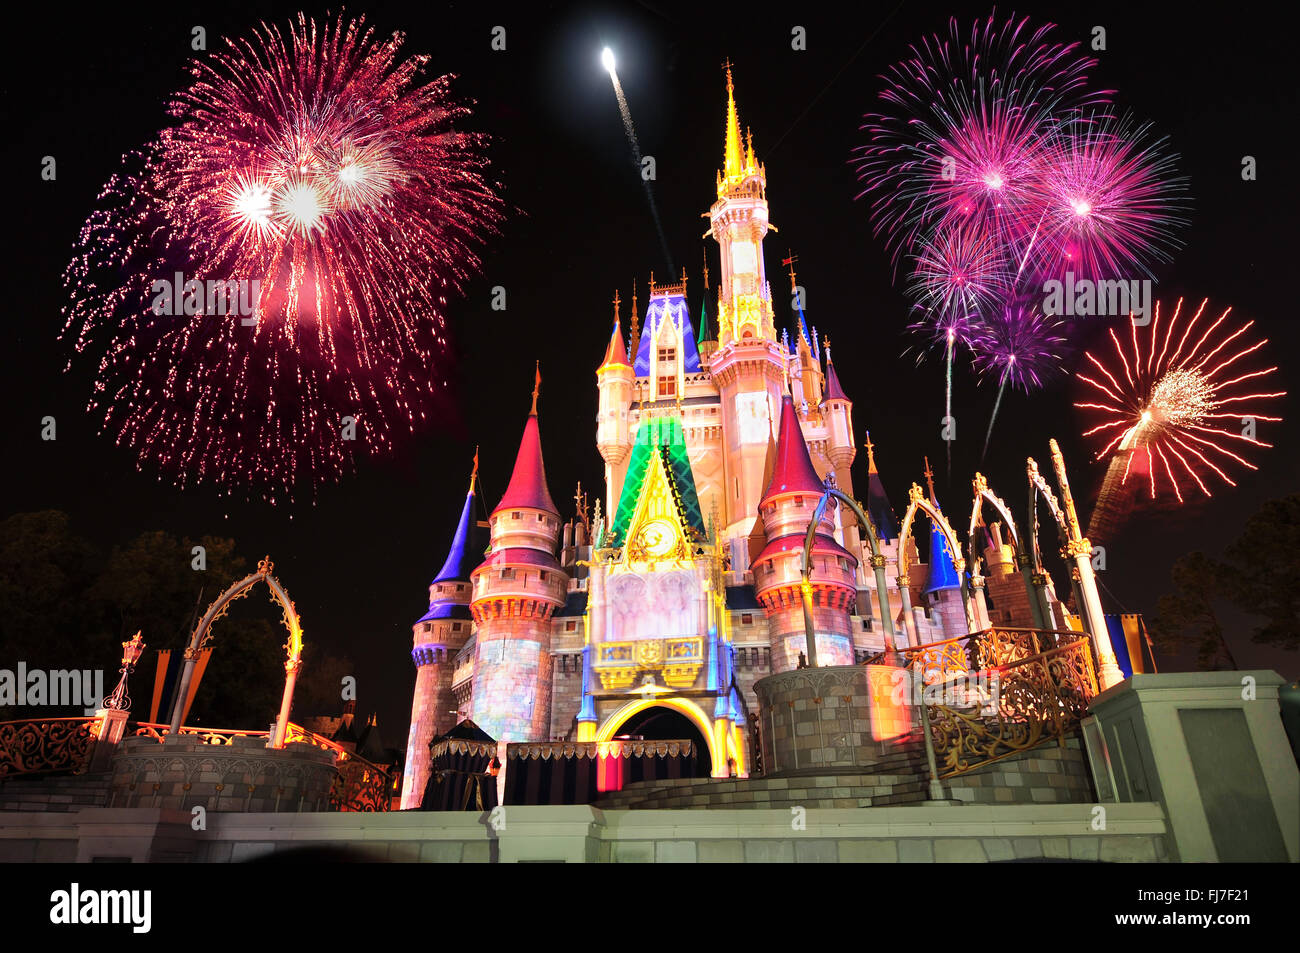 Display of fireworks and colorful lights on Cinderella's Castle in Magic Kingdom at DisneyWorld, Orlando, FloridaStock Photo